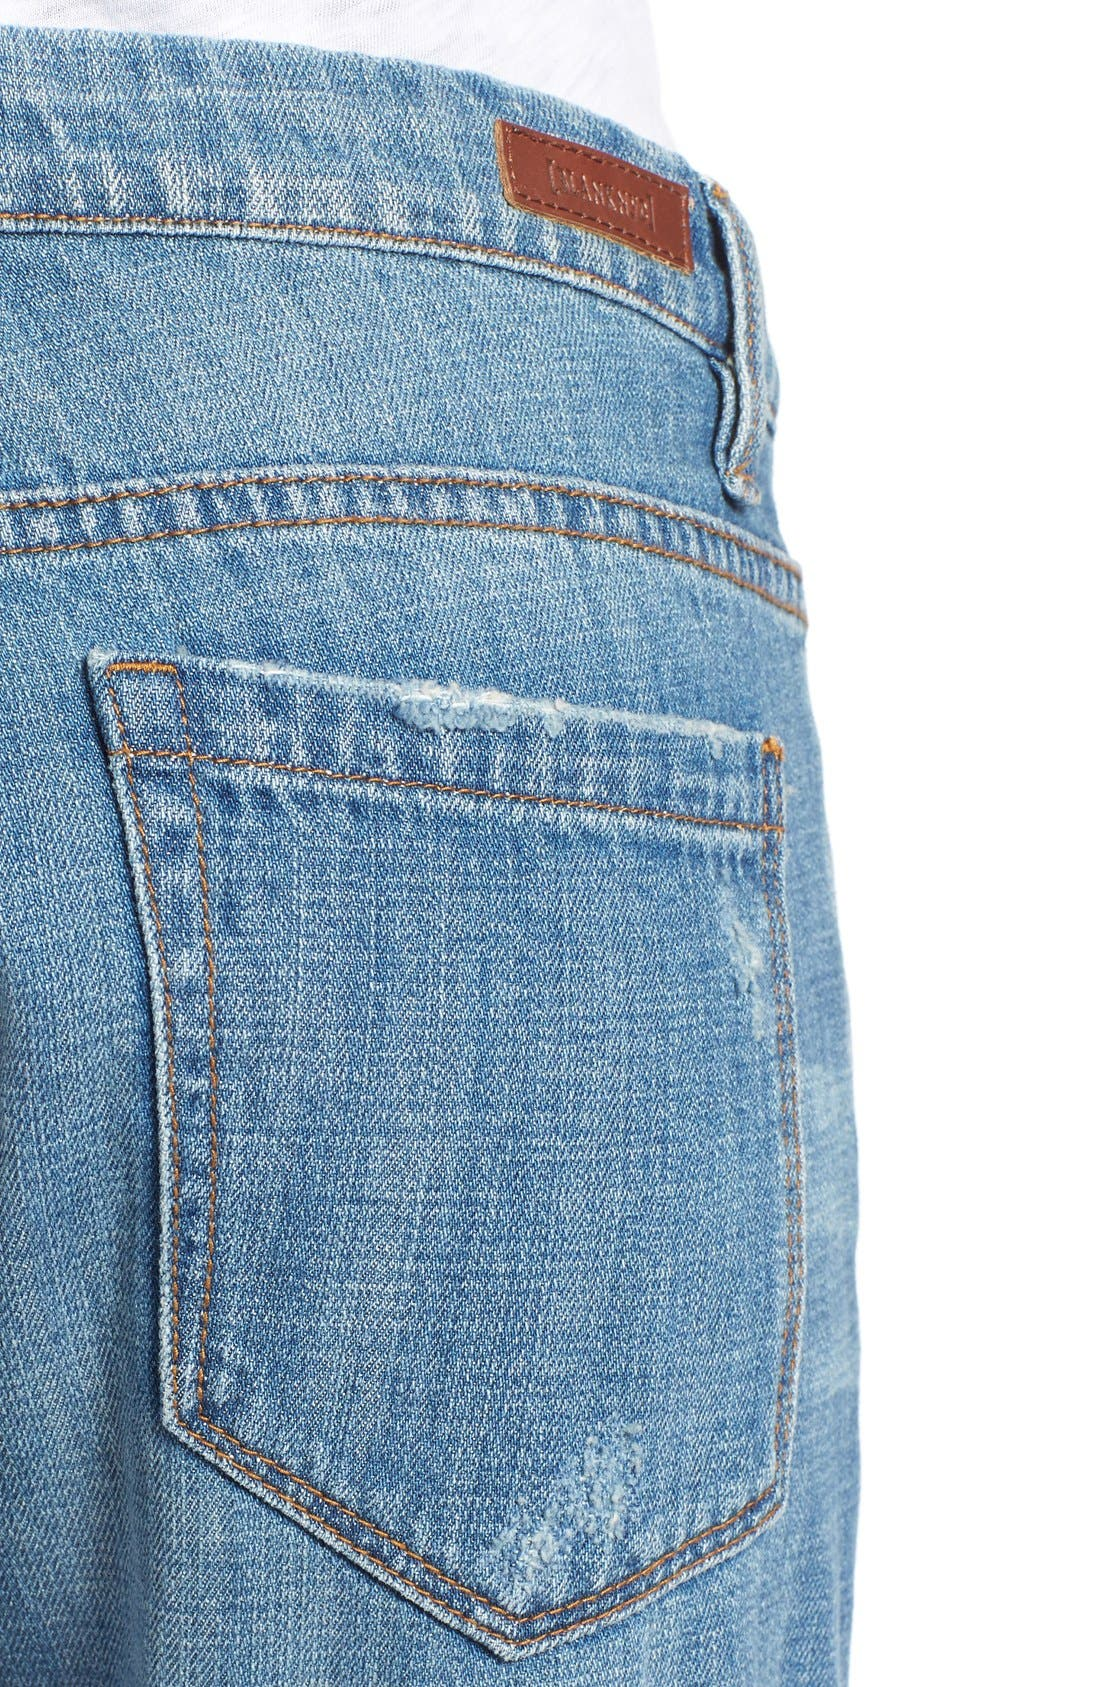 'Meant to Be' High Rise Distressed Boyfriend Jeans,                             Alternate thumbnail 5, color,                             Tomboy